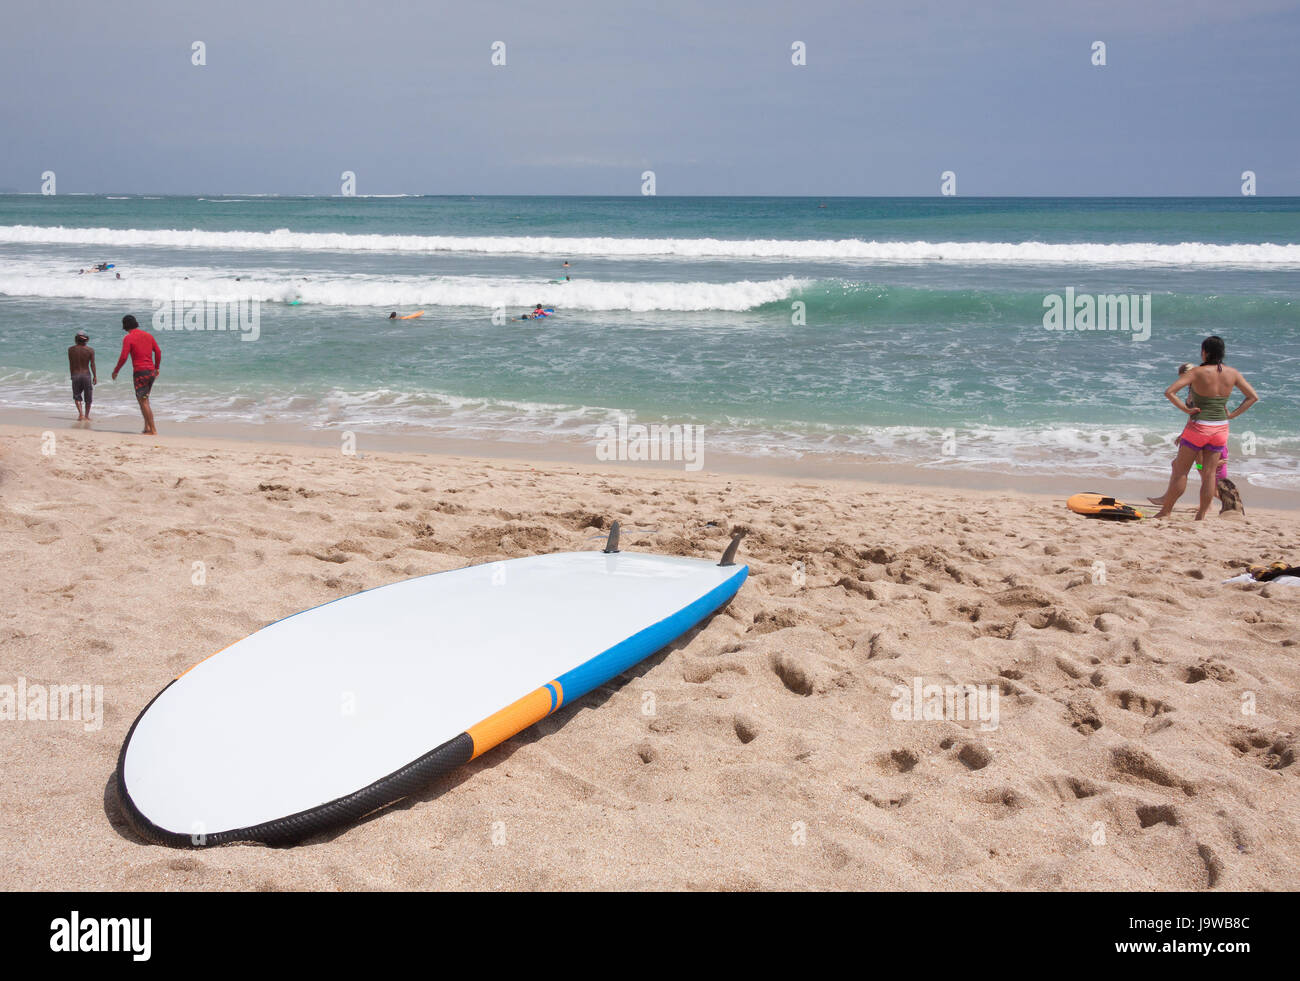 Surfboards on the famous beach on Kuta in Bali Indonesia - Stock Image